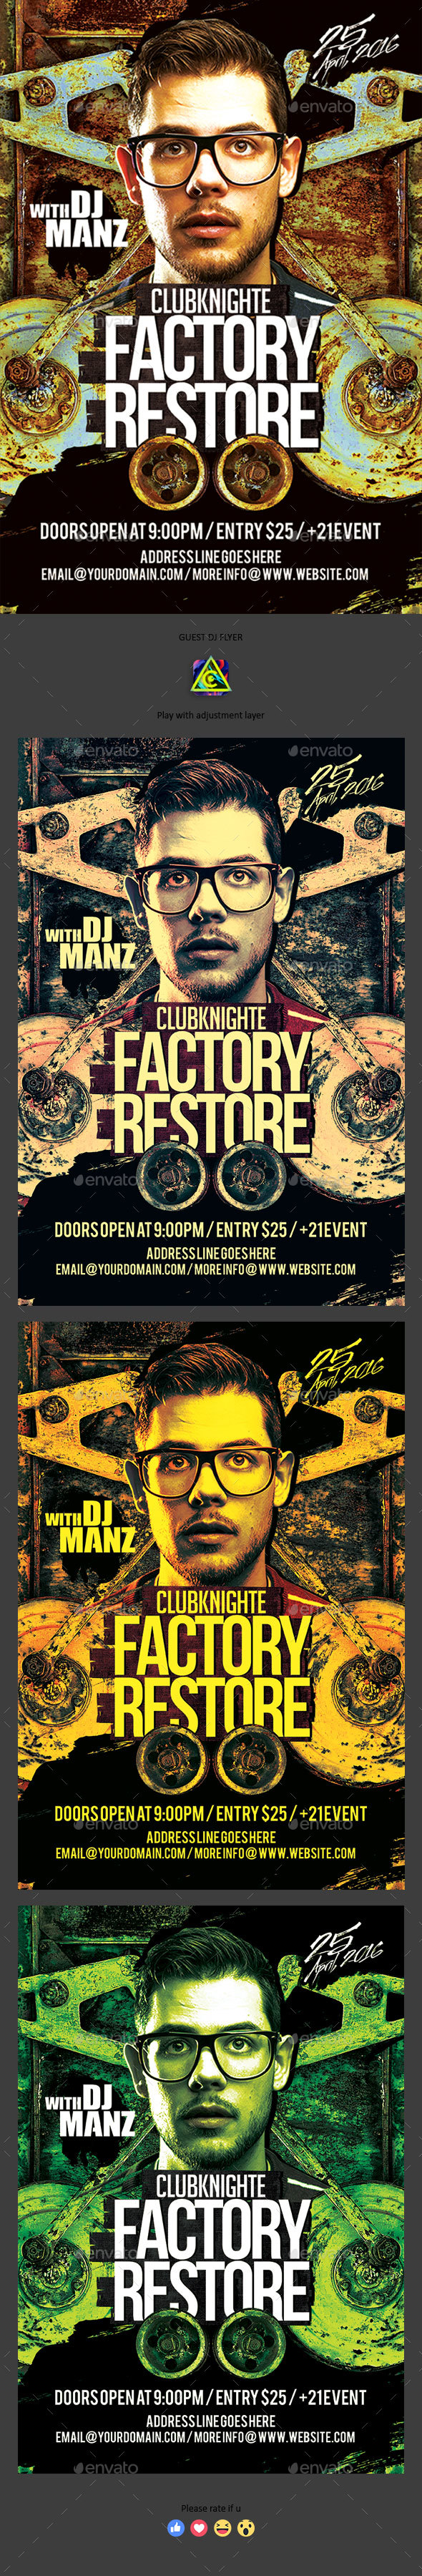 Factory Restore Guest Dj Flyer - Clubs & Parties Events